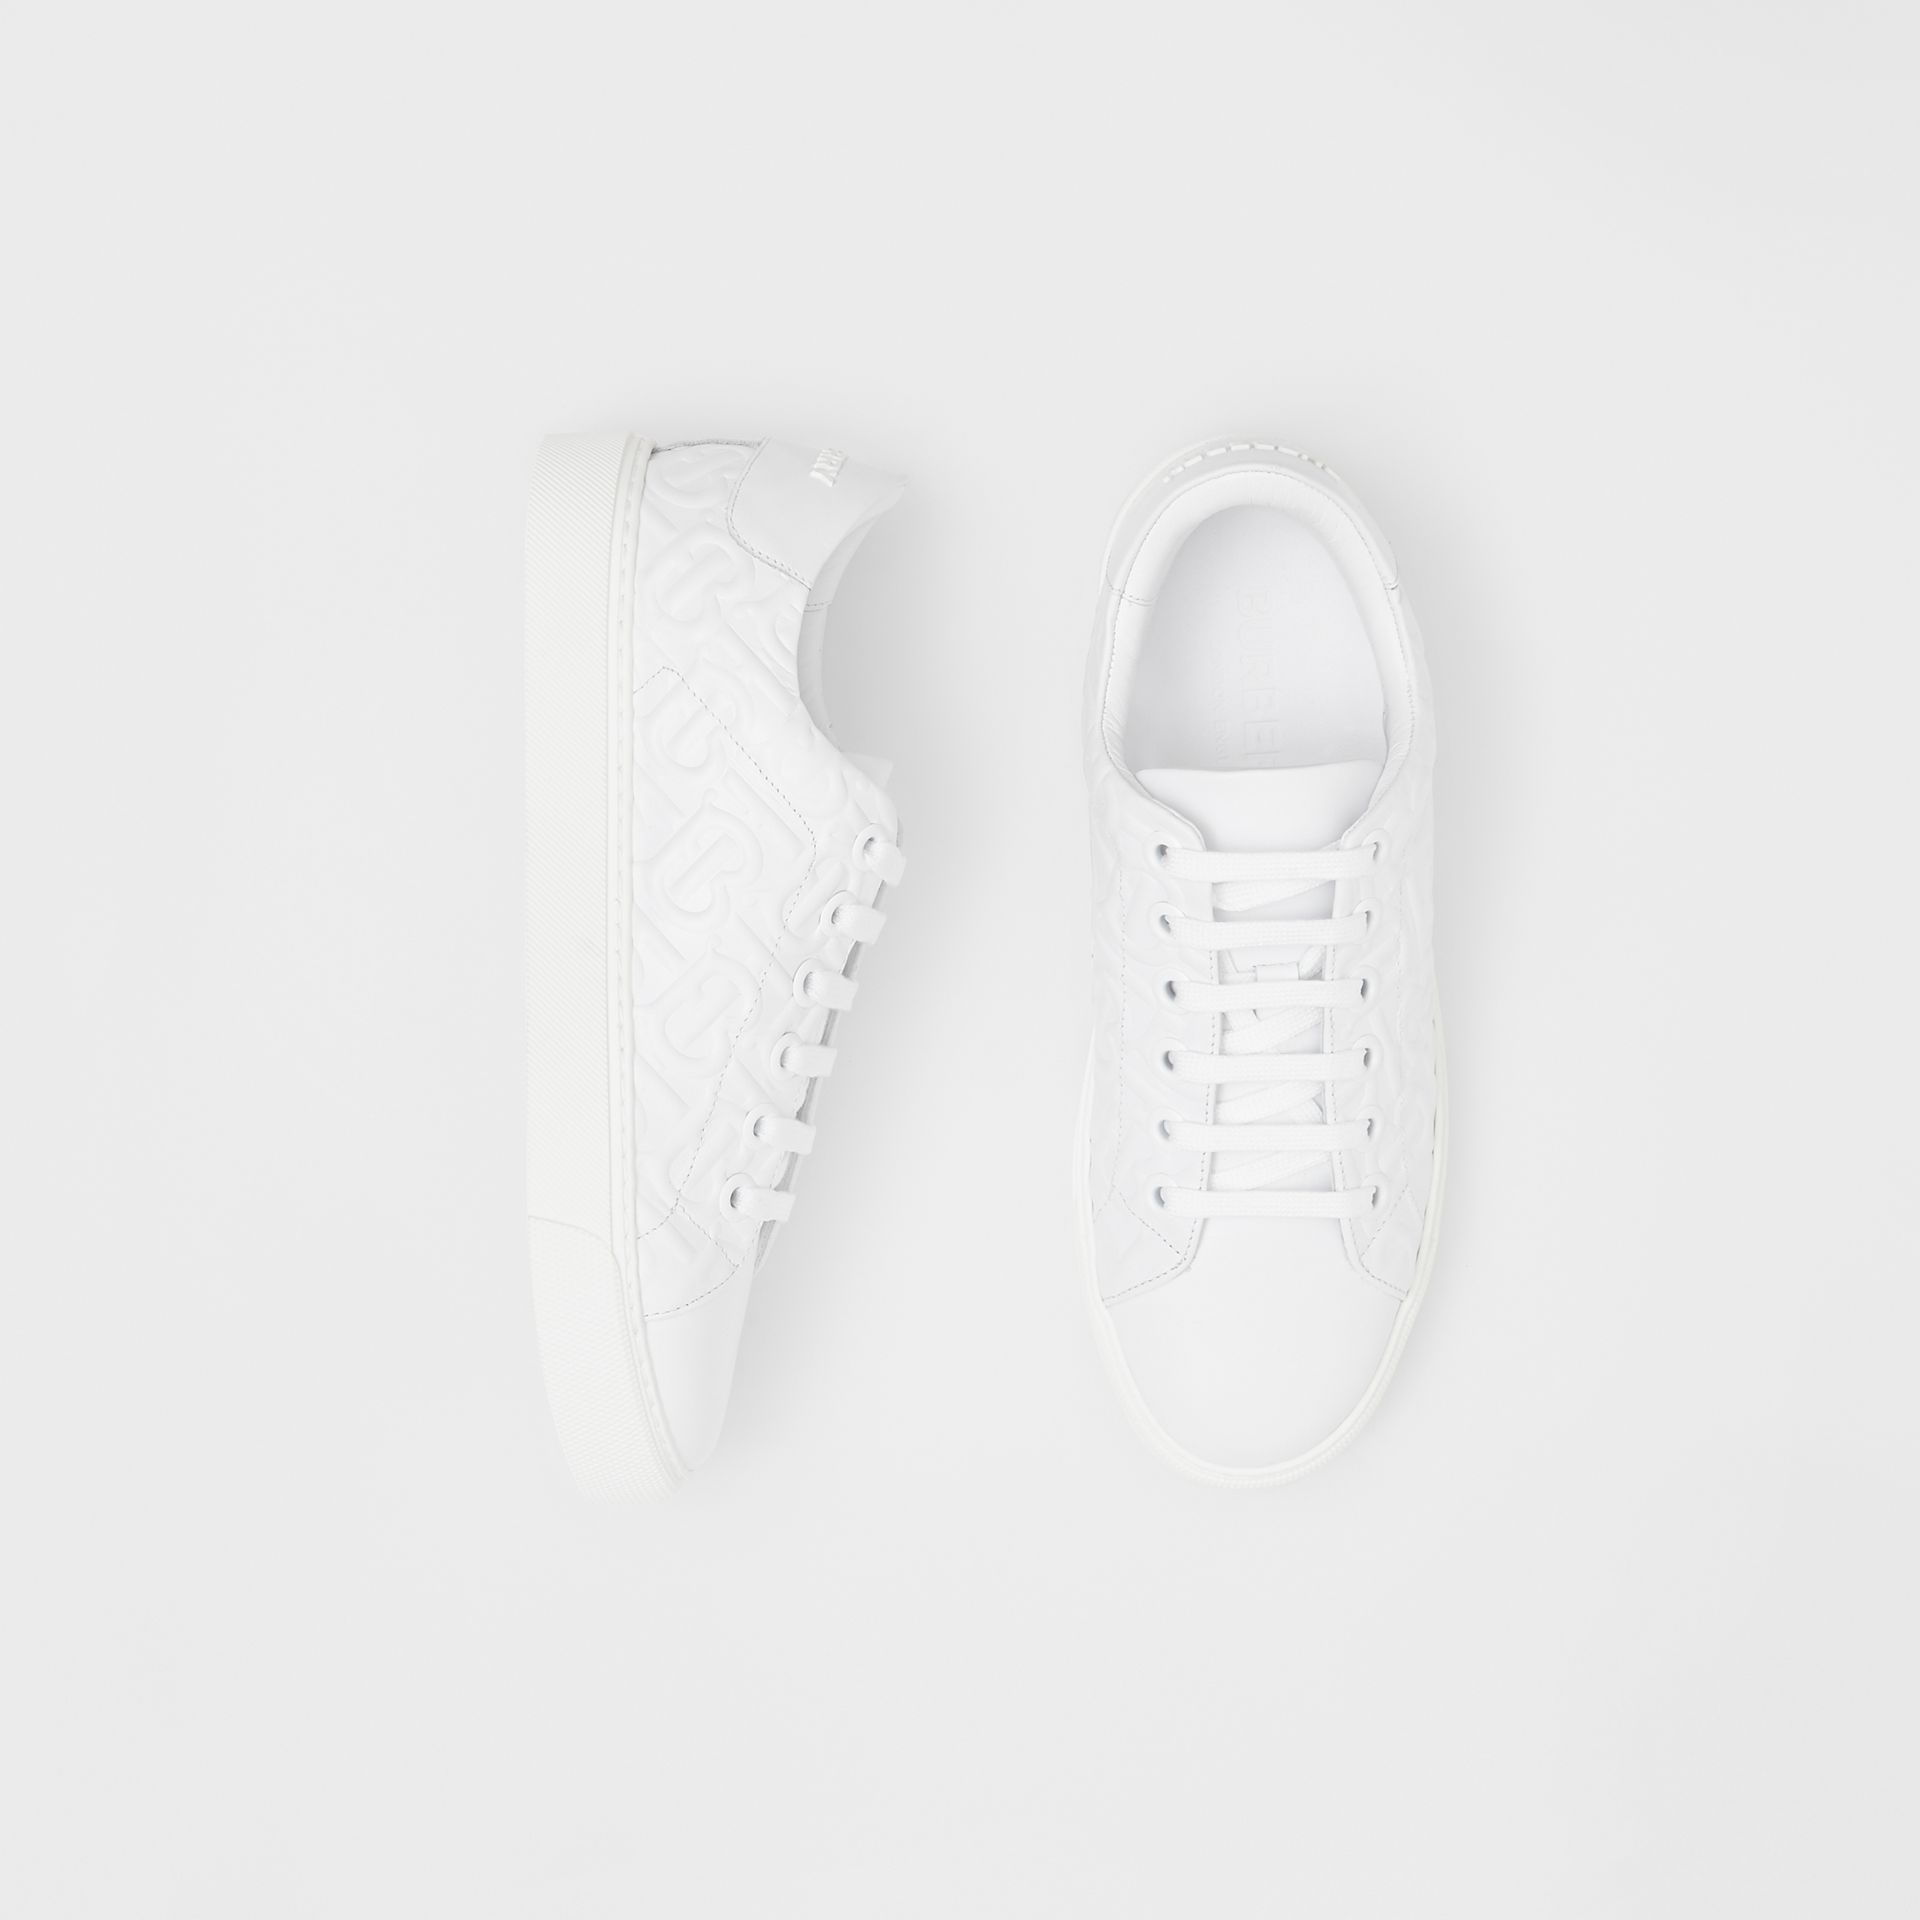 Sneakers en cuir Monogram (Blanc) - Femme | Burberry - photo de la galerie 0